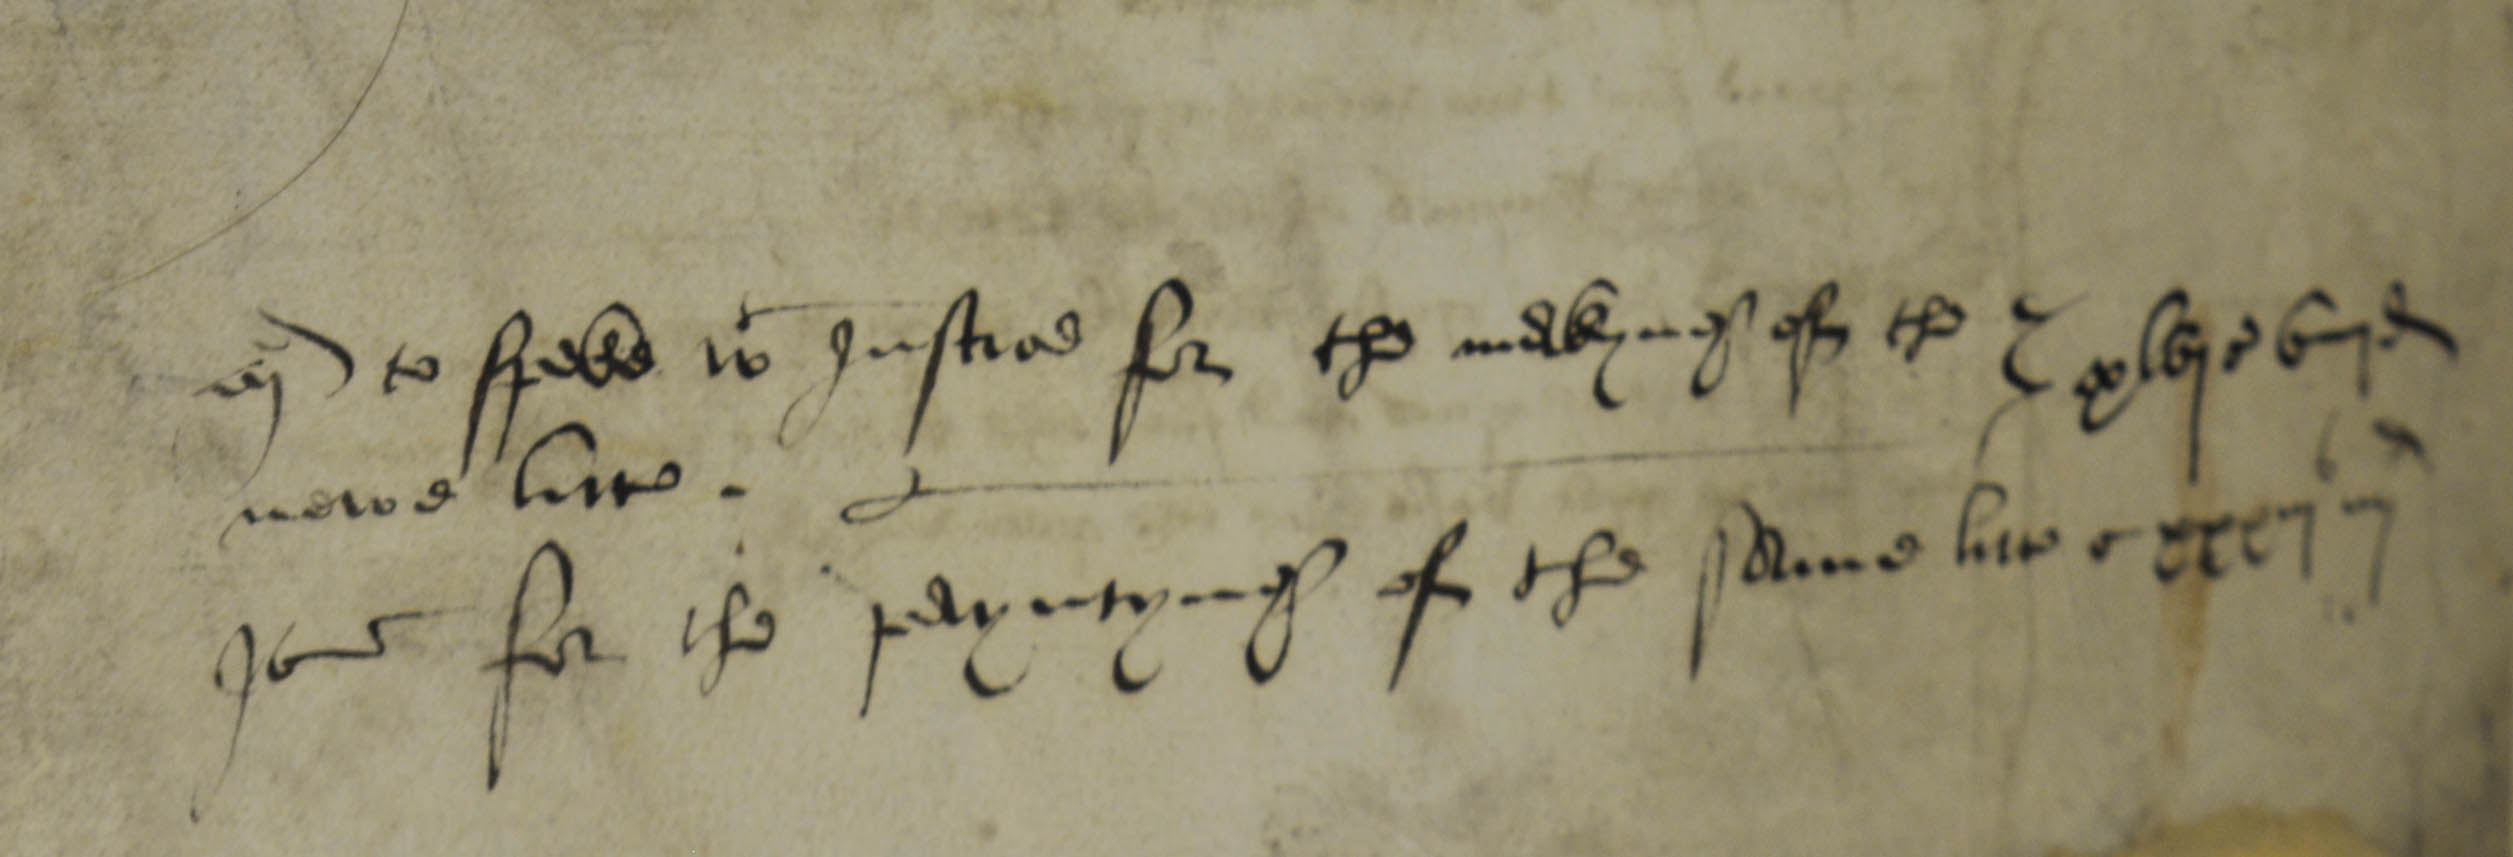 A note on the list for the preparations for Anne Boleyn's coronation, possibly in Cromwell's hand (SP 1/76, f.132).